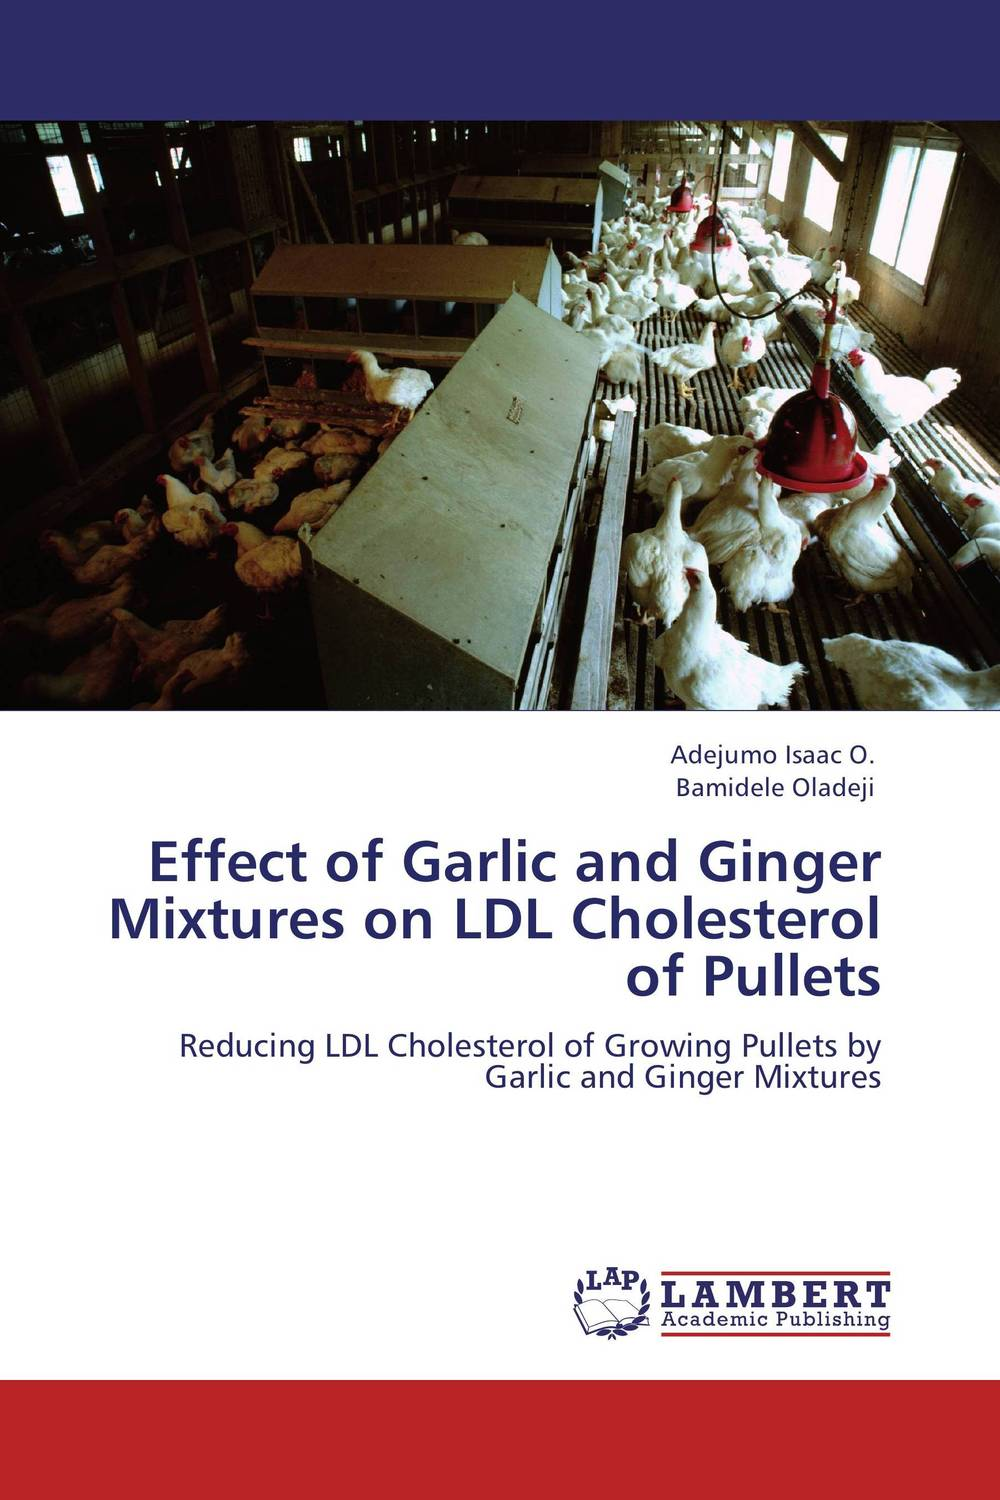 Effect of Garlic and Ginger Mixtures on LDL Cholesterol of Pullets vishal polara and pooja bhatt effect of node density and transmission range on zrp